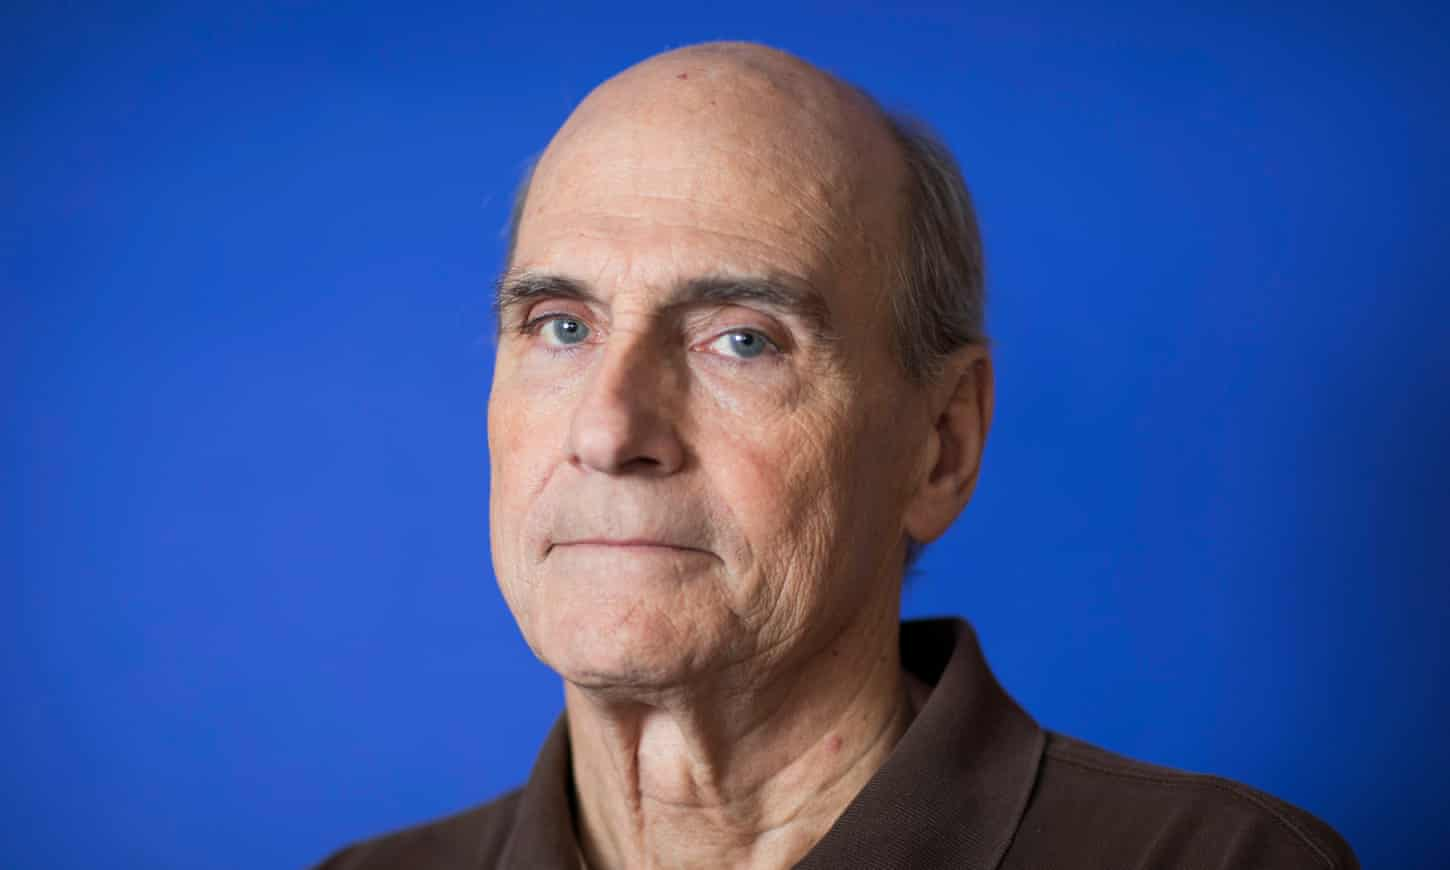 'I was a bad influence on the Beatles': James Taylor on Lennon, love and recovery